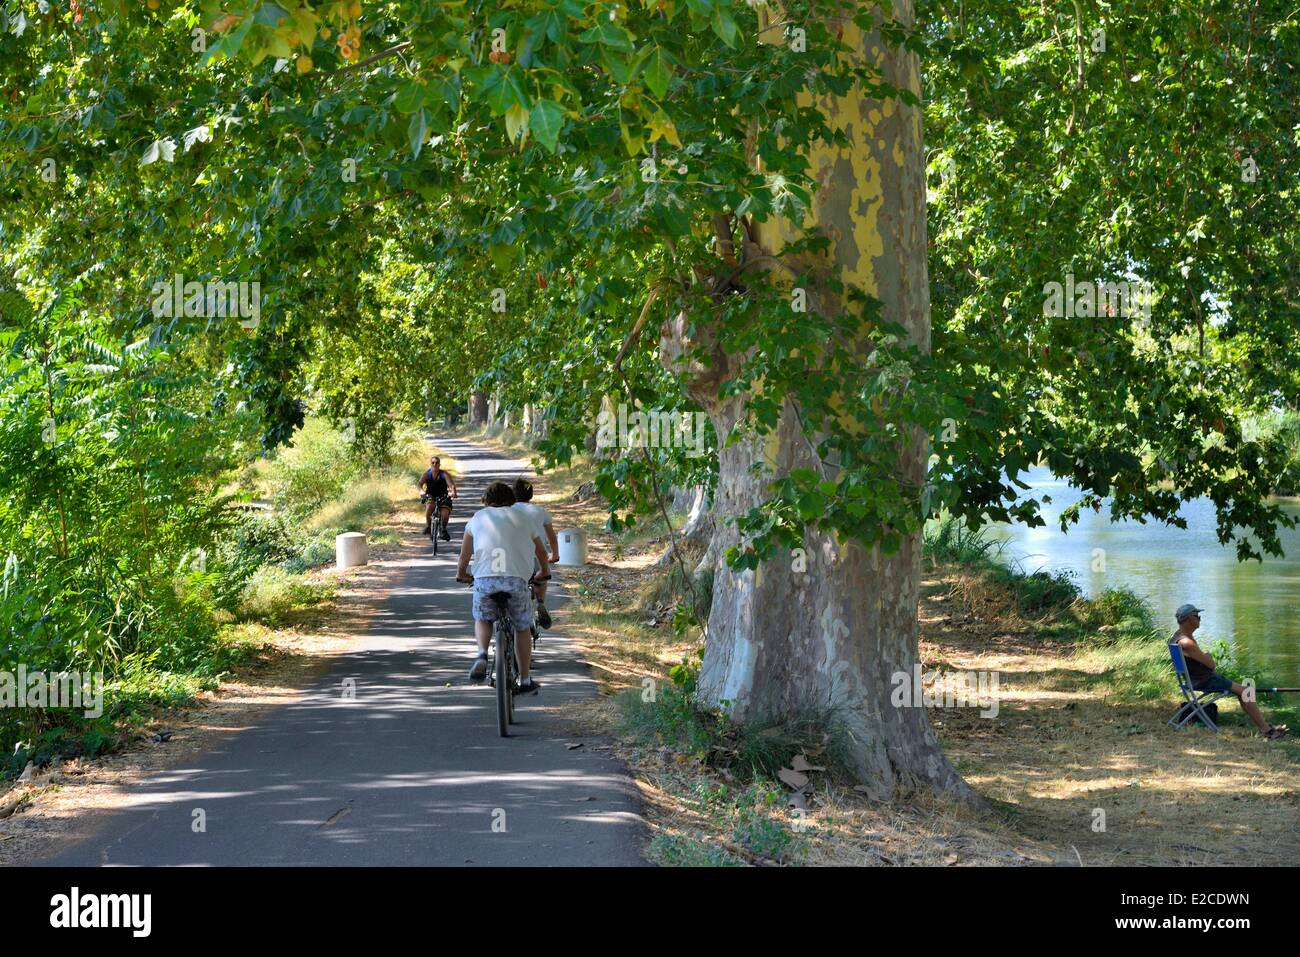 Canal Du Midi Bicycle Stock Photos & Canal Du Midi Bicycle